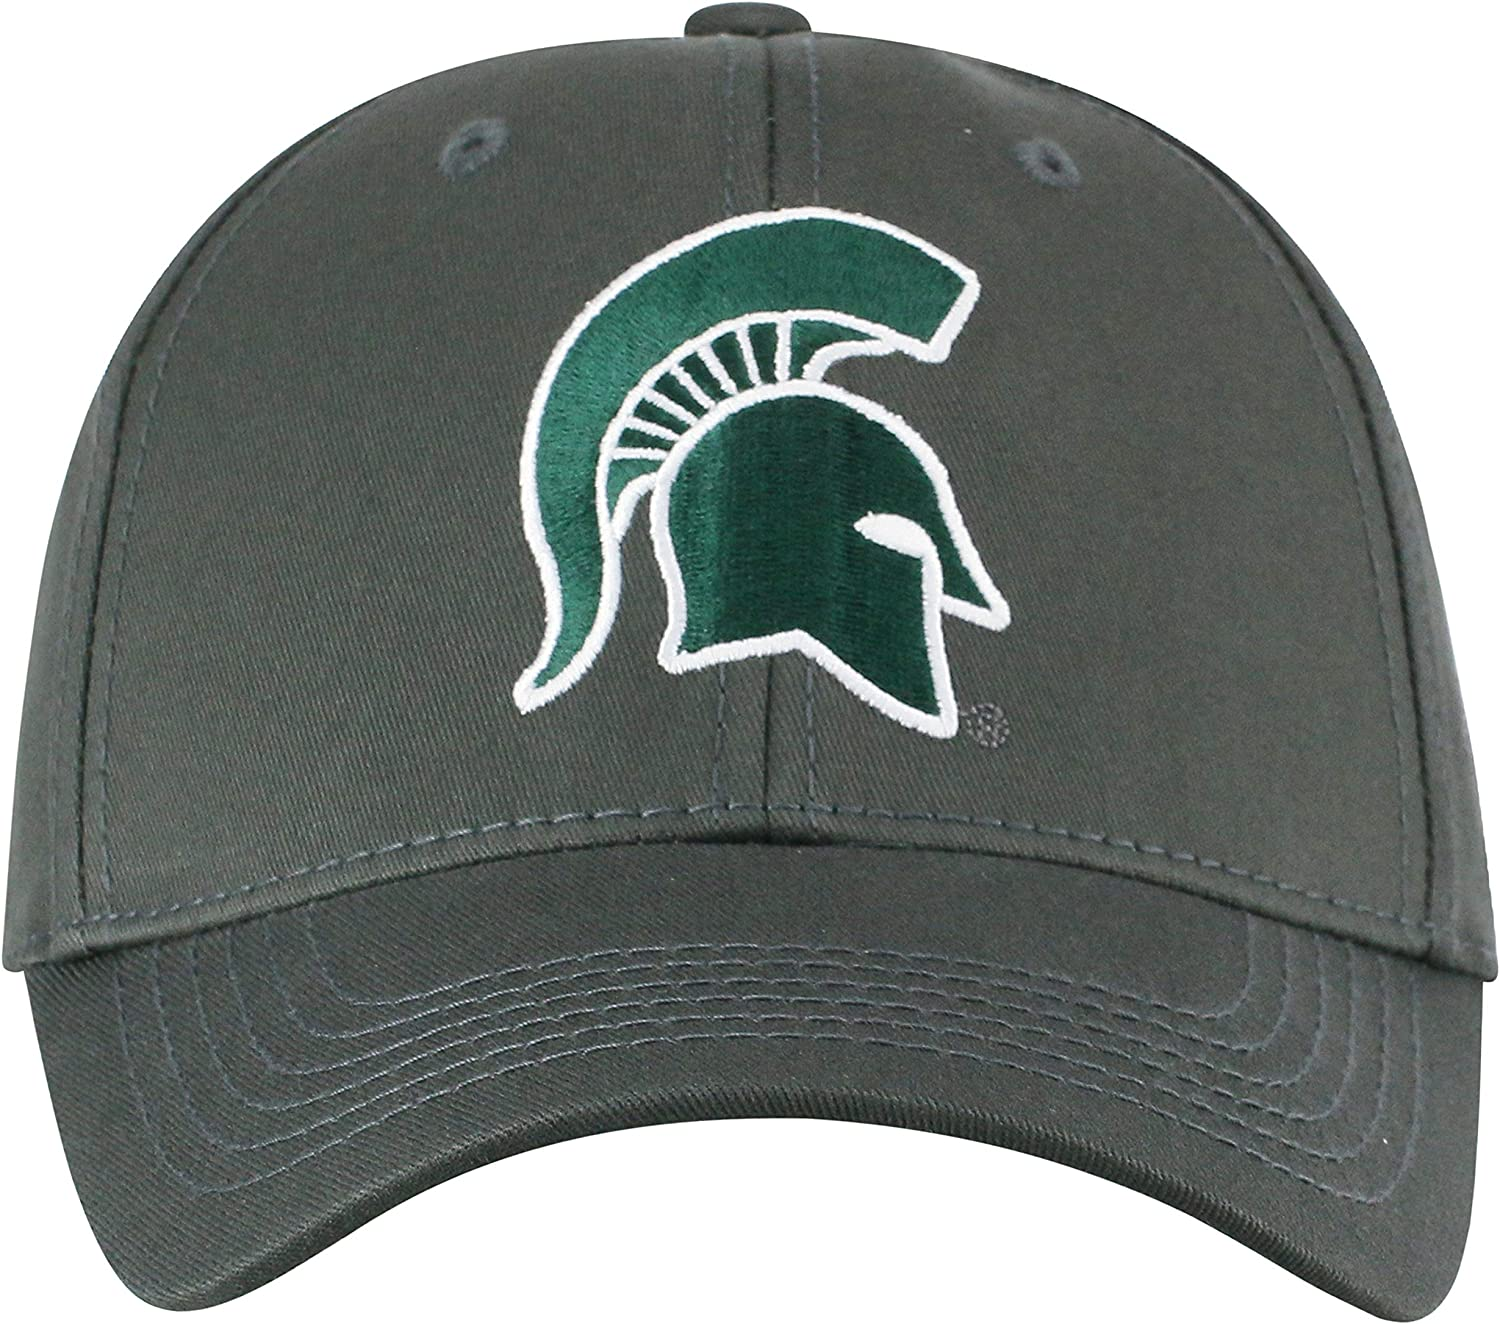 Top of the World Mens Fitted Charcoal Icon Hat